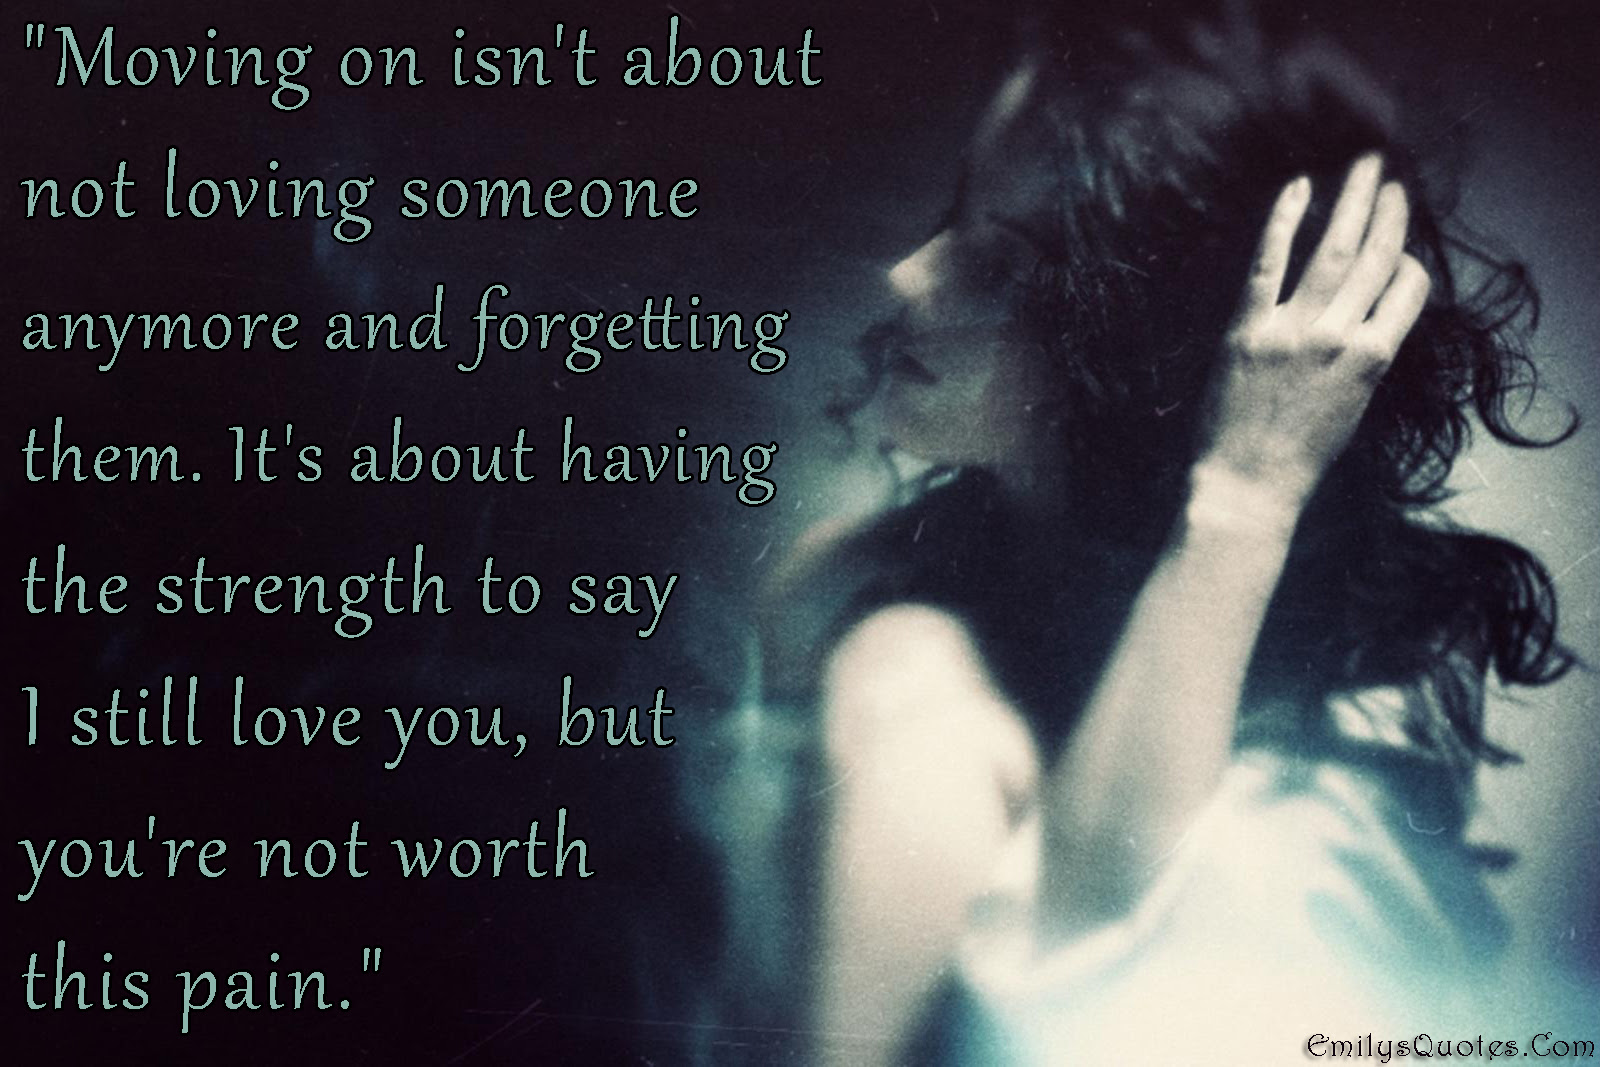 Moving On Isnt About Not Loving Someone Anymore And Forgetting Them